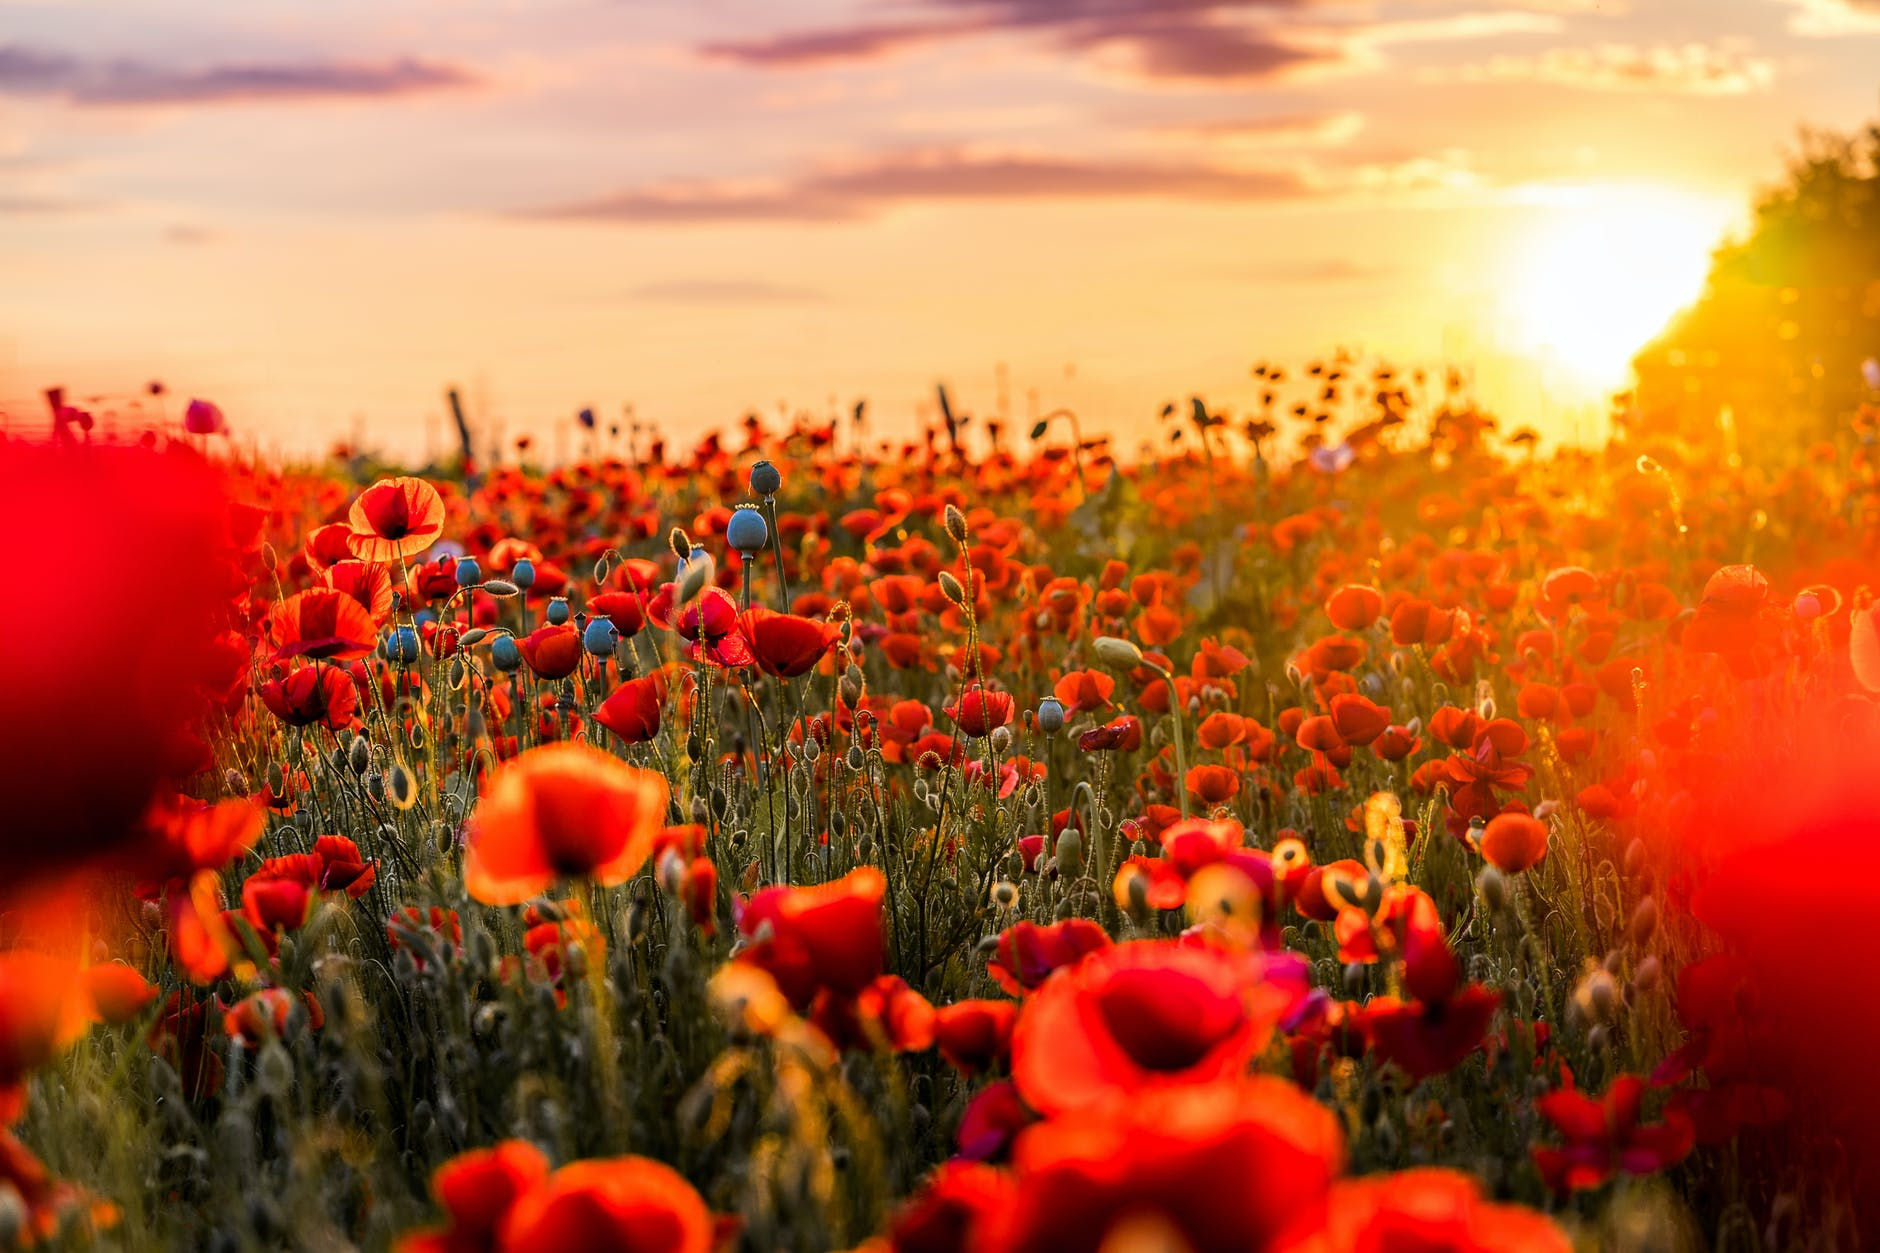 Modern image of a field of poppies.